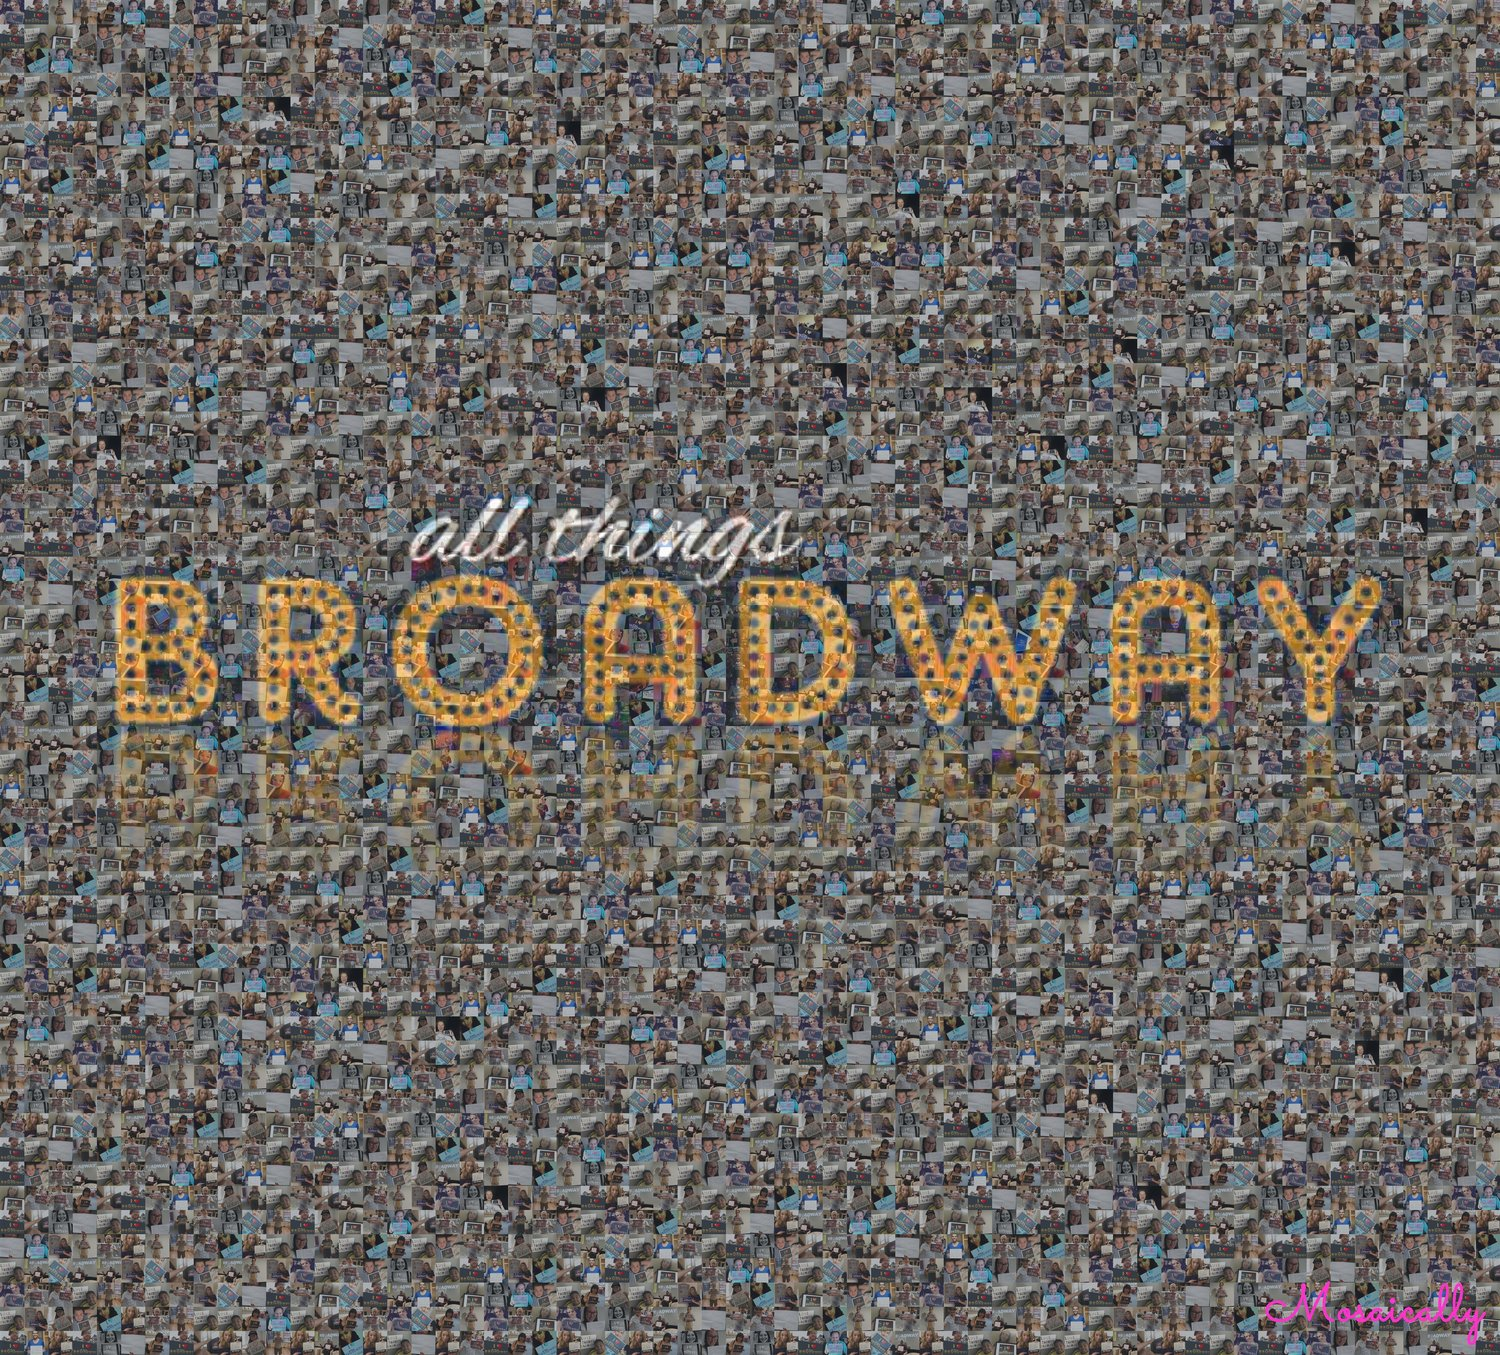 Blog — All Things Broadway: Where the fans and stars align!